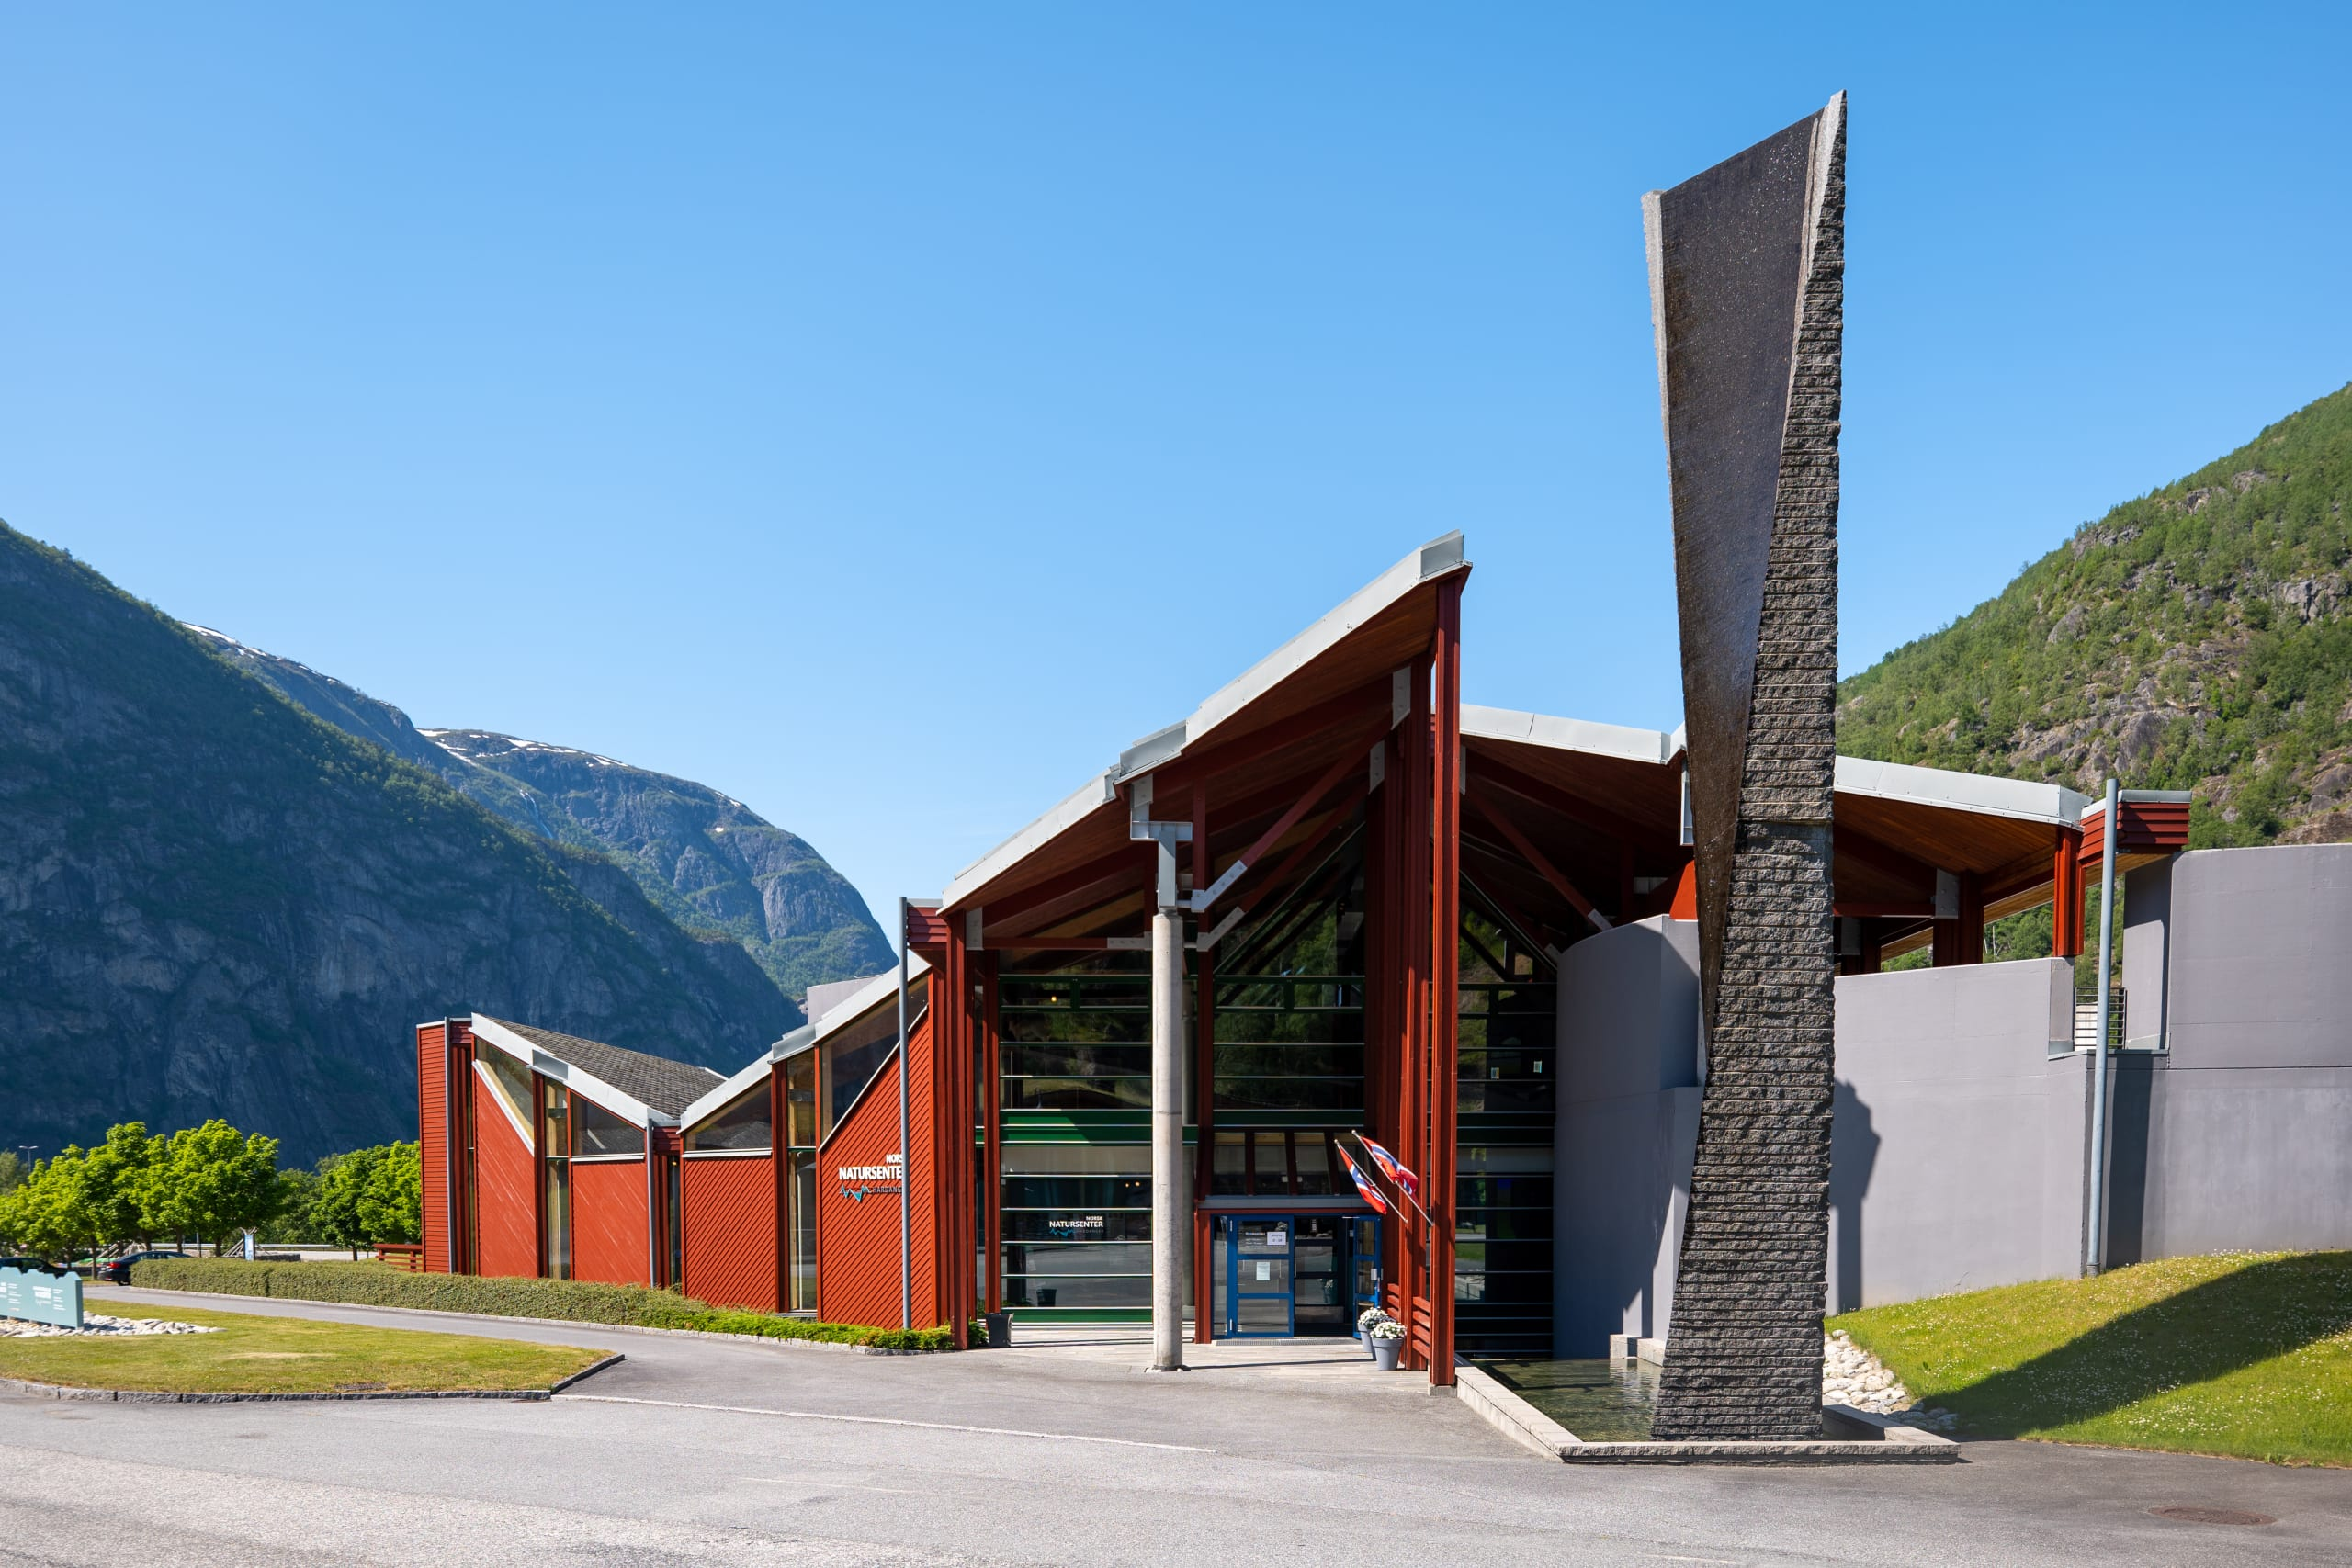 The entrance of the Norwegian Nature Centre in Hardanger